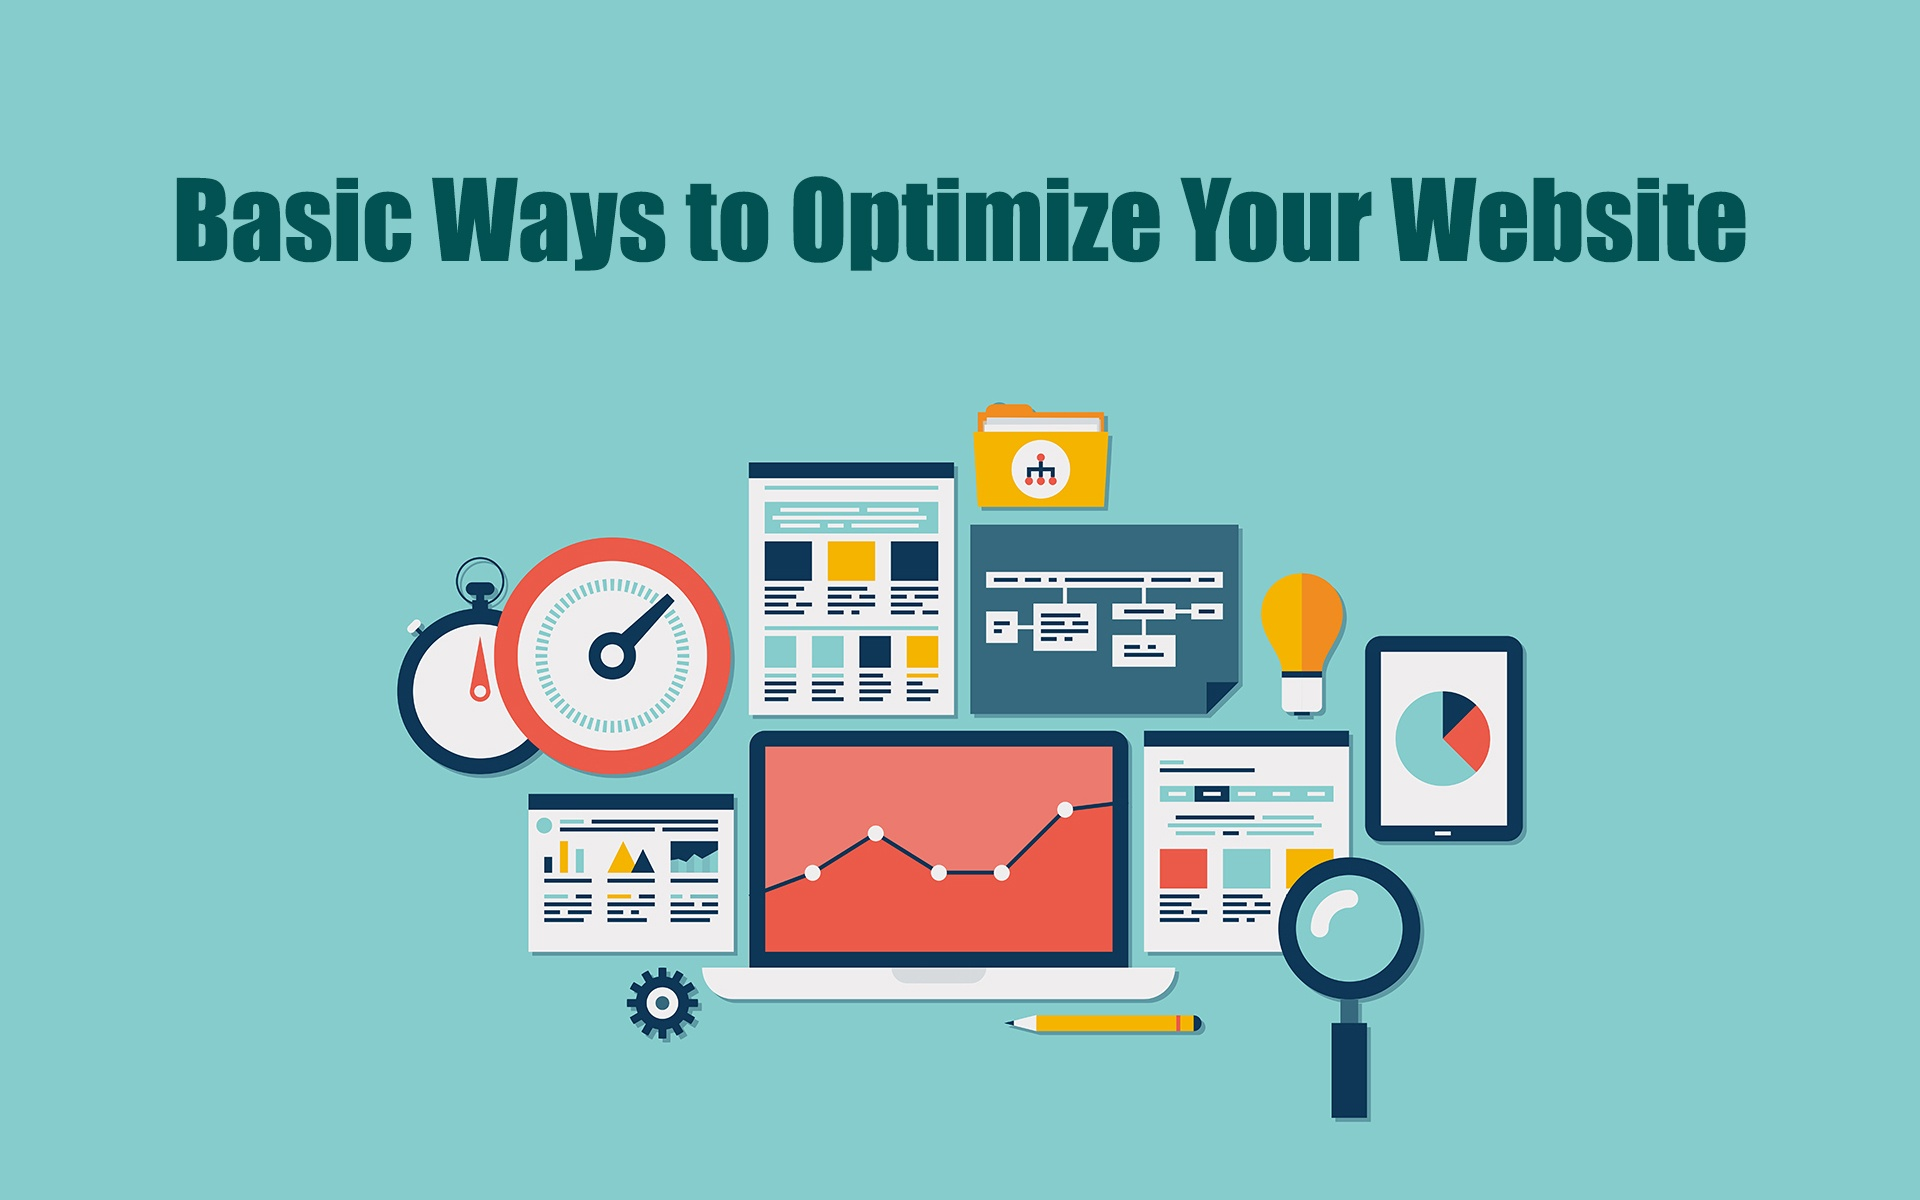 Basic Ways to Optimize Your Website